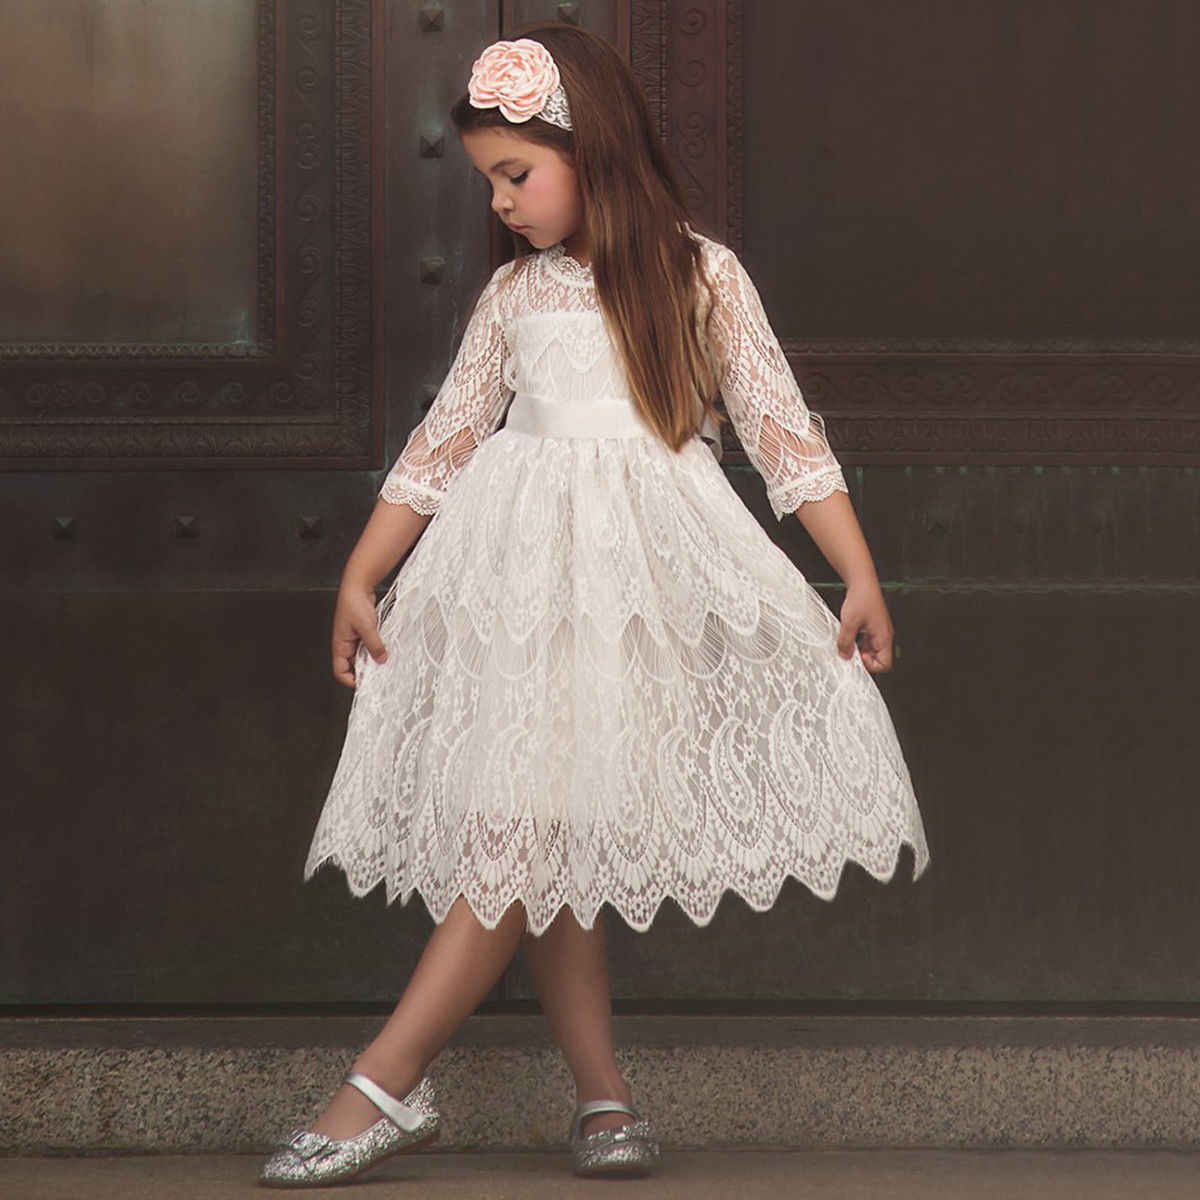 Party Wedding Kids Dresses For Girls Flower Lace Princess Formal Bridesmaid Girls Children Dresses With Belt Girls Costumes